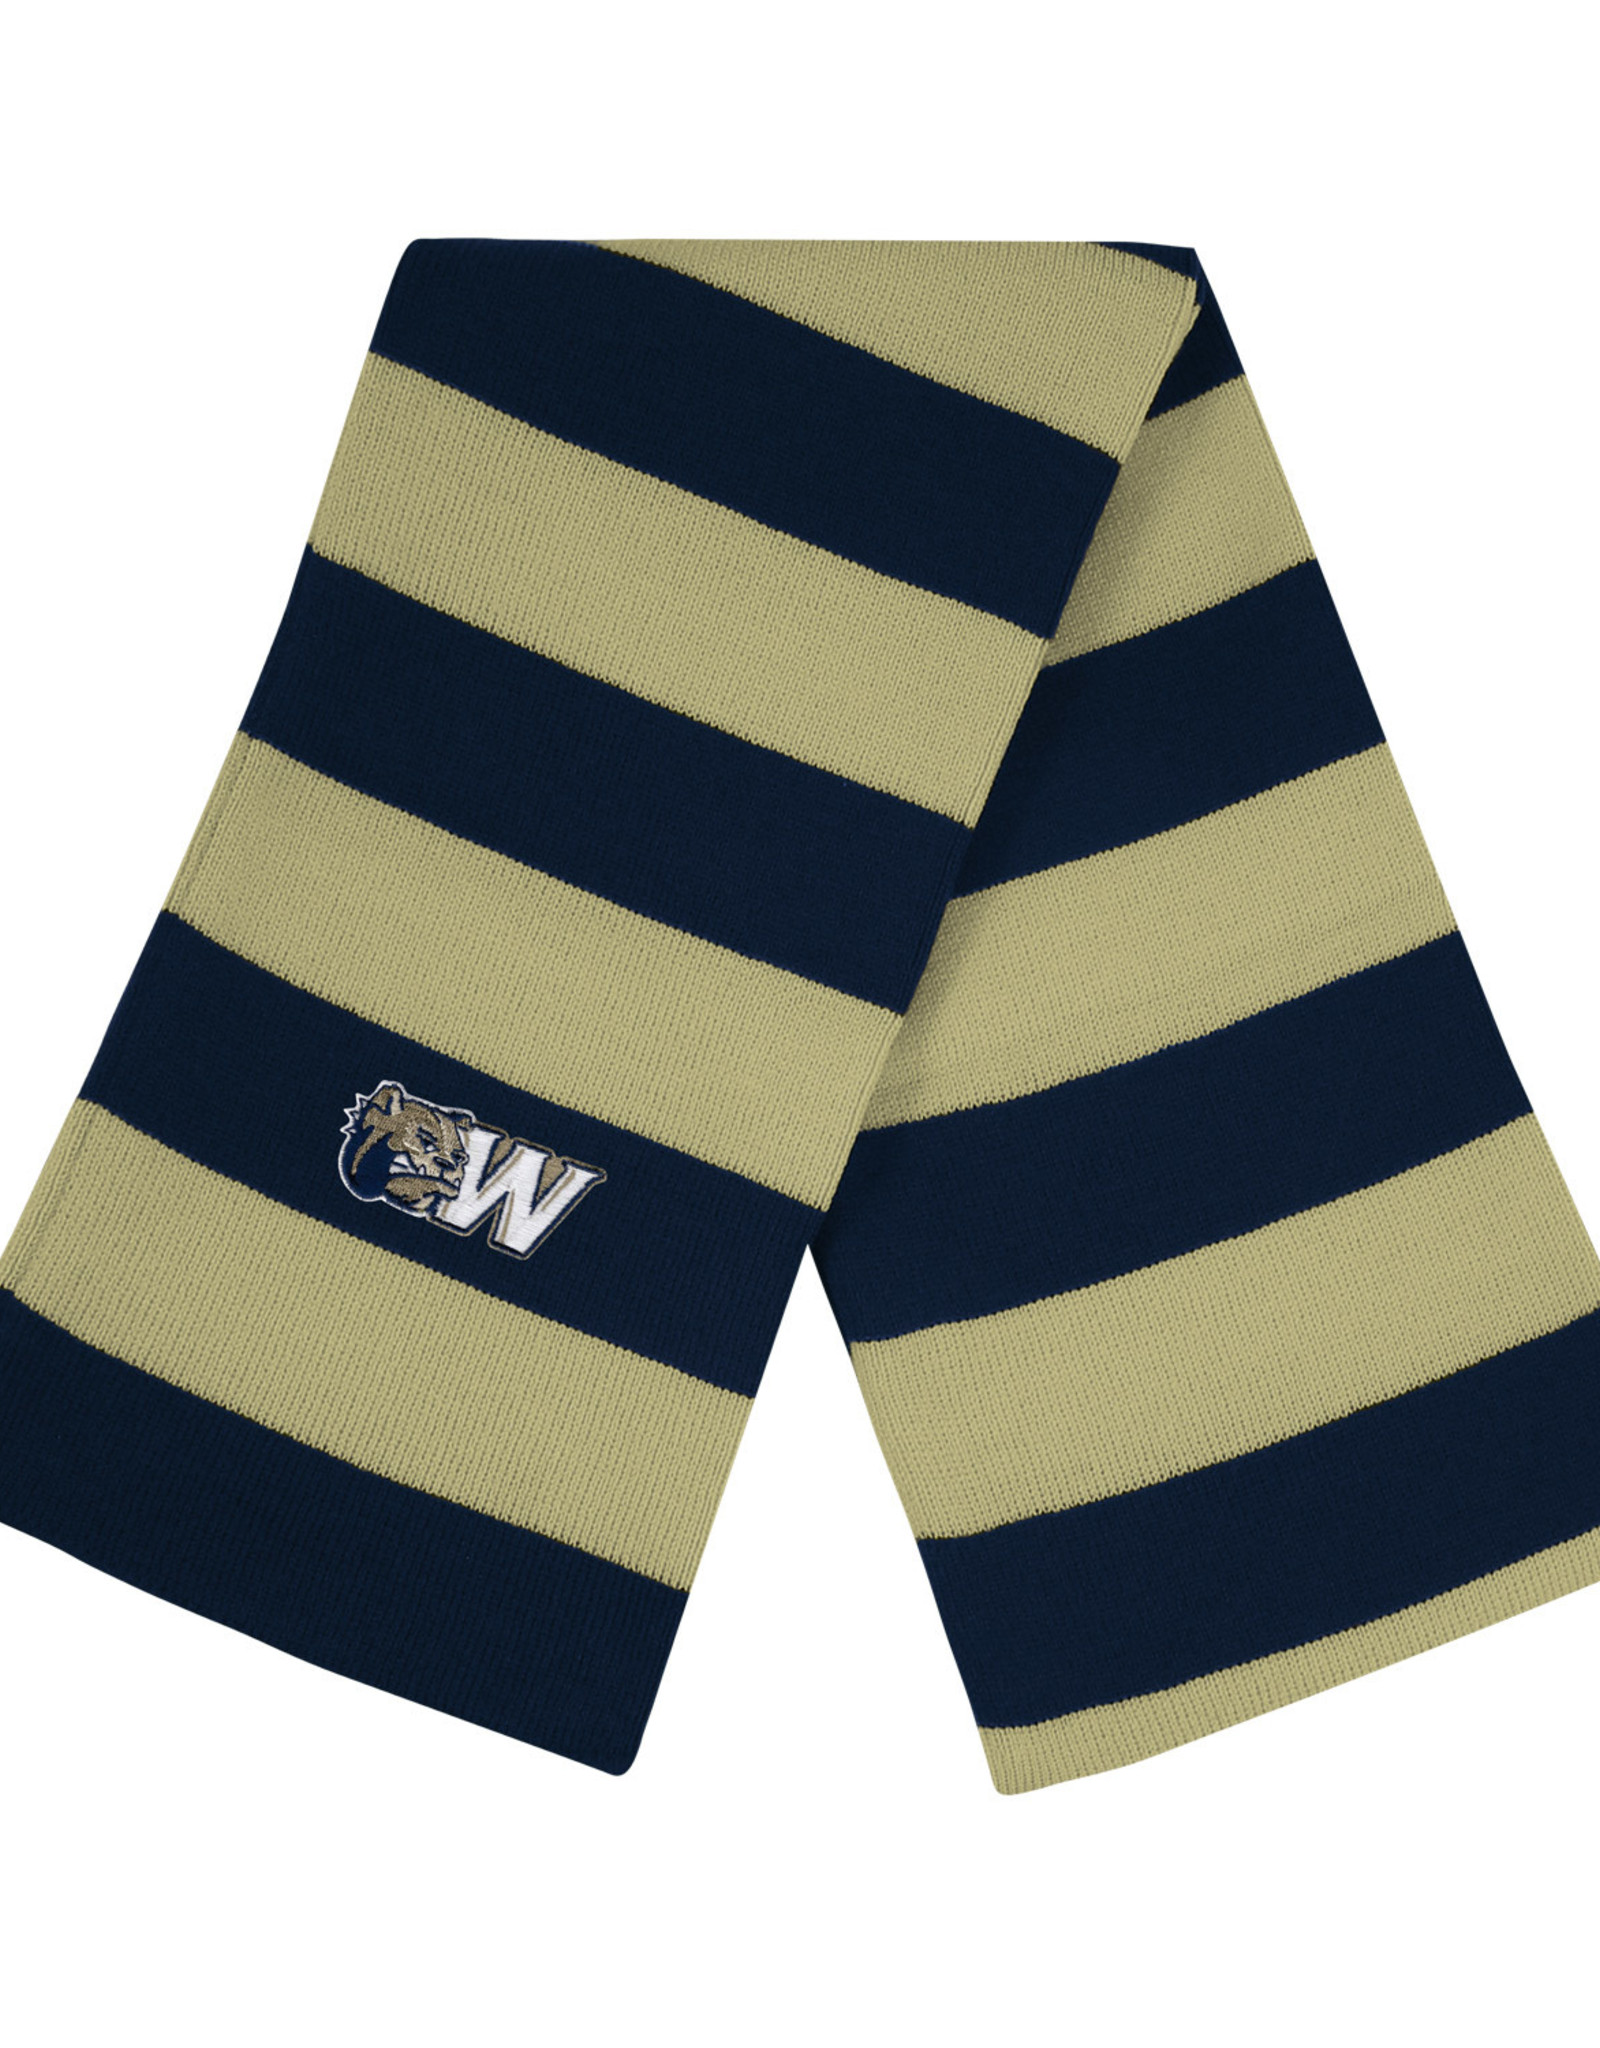 Logo Fit Niagra Rugby Striped Knit Scarf